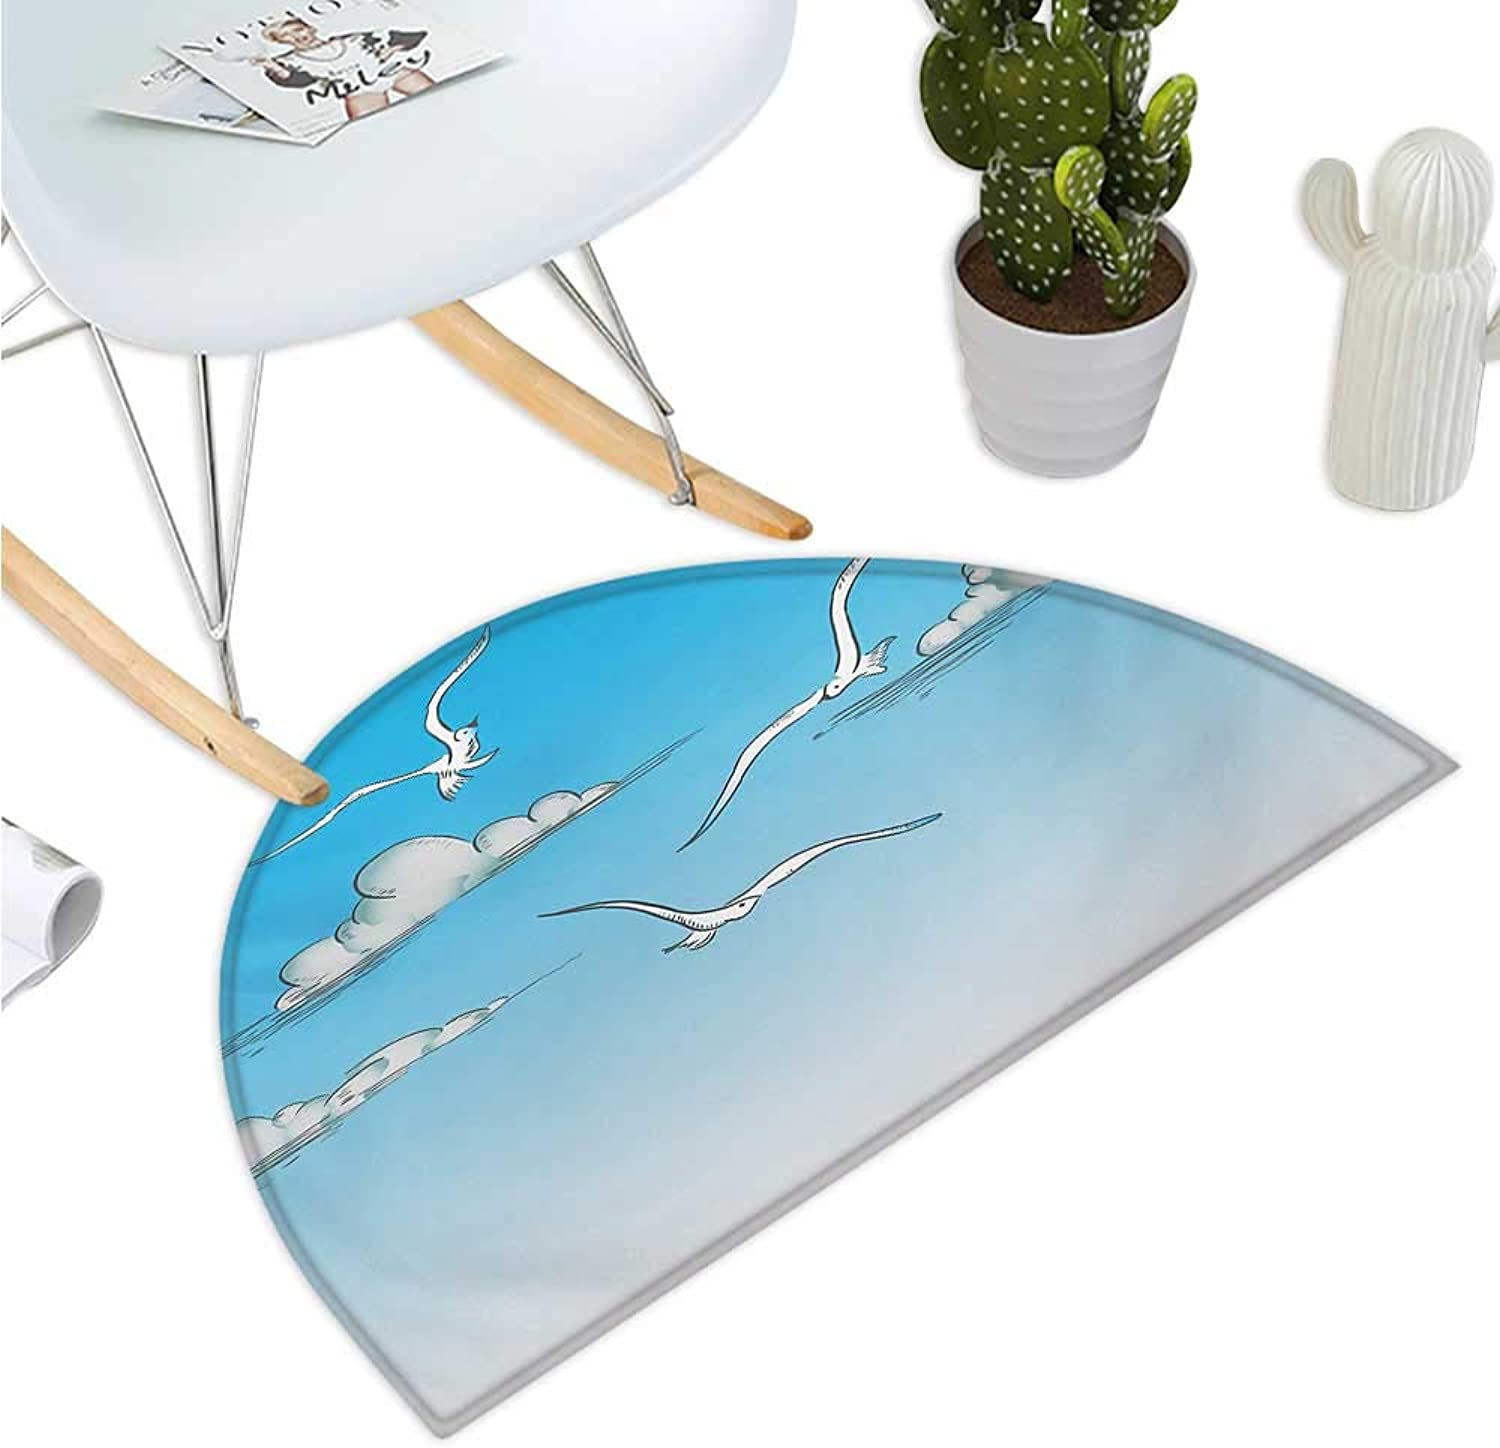 Seagulls Semicircle Doormat Seagulls Flying in an Ombre Sky Background with Clouds Minimalistic Sketch Drawing Entry Door Mat H 35.4  xD 53.1  White bluee